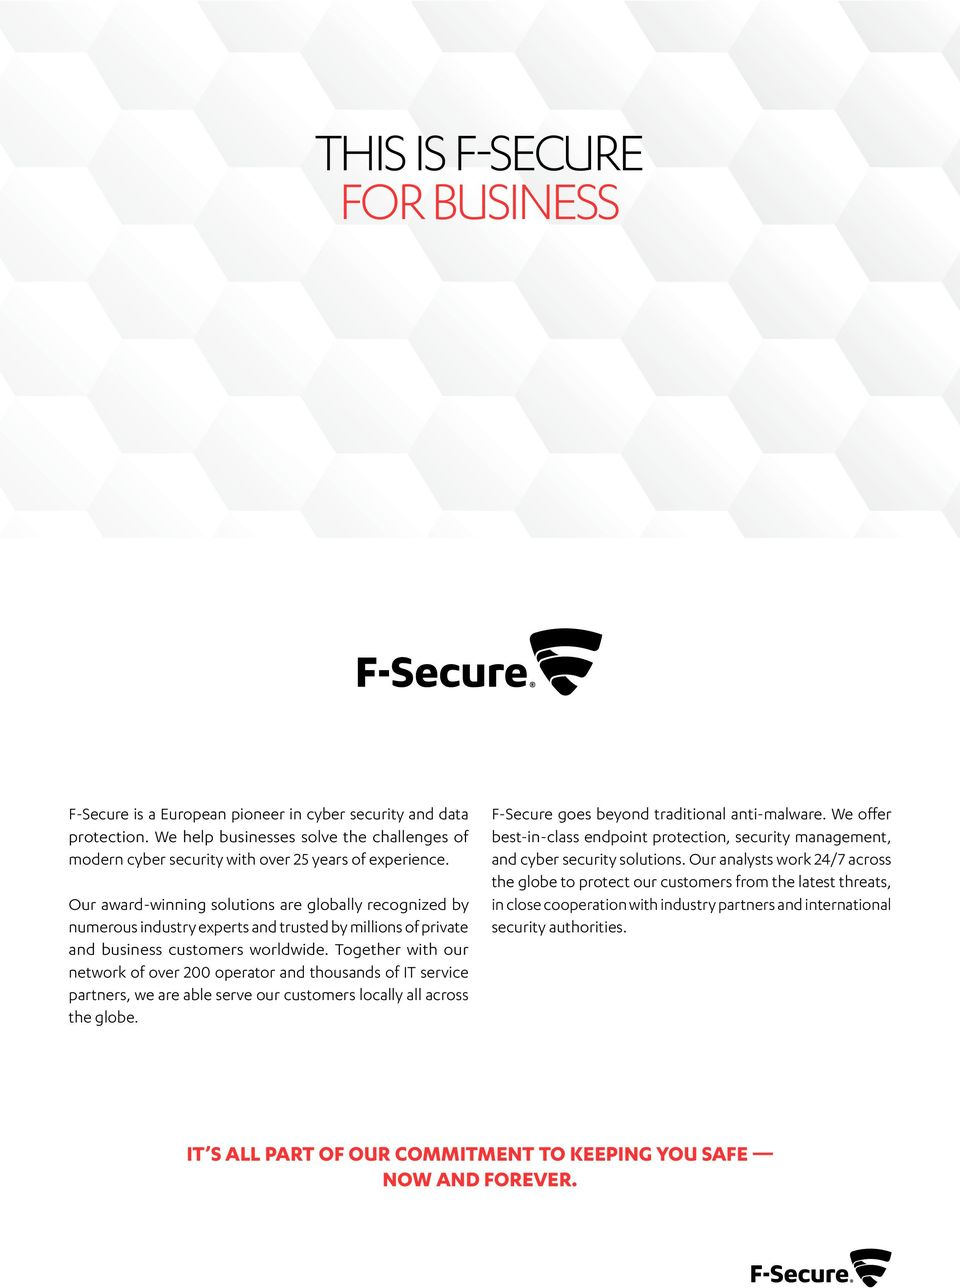 Together with our network of over 200 operator and thousands of IT service partners, we are able serve our customers locally all across the globe. F-Secure goes beyond traditional anti-malware.